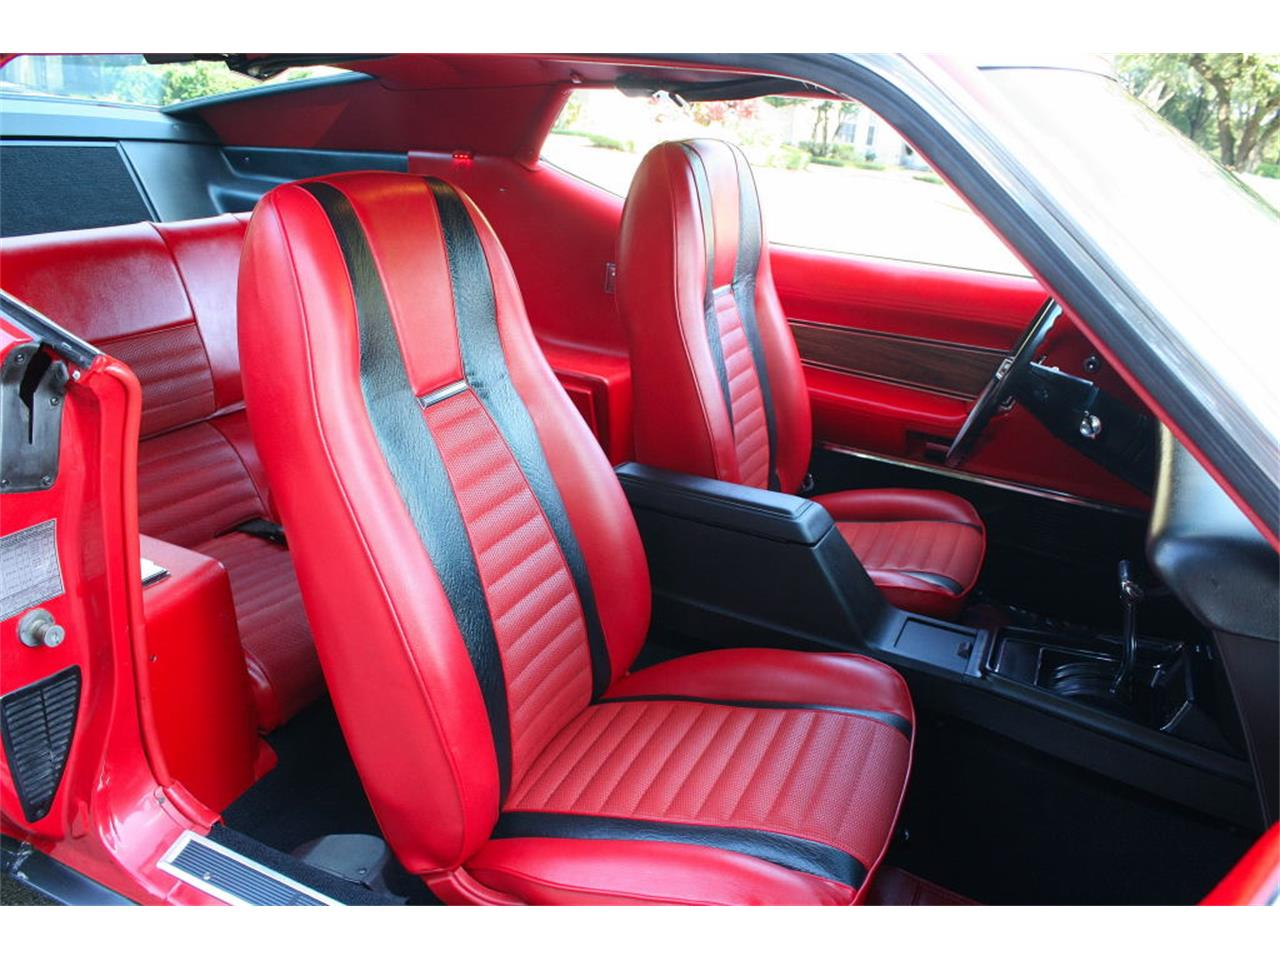 Large Picture of 1972 Mustang located in lakeland Florida - $39,500.00 Offered by MJC Classic Cars - MGWW